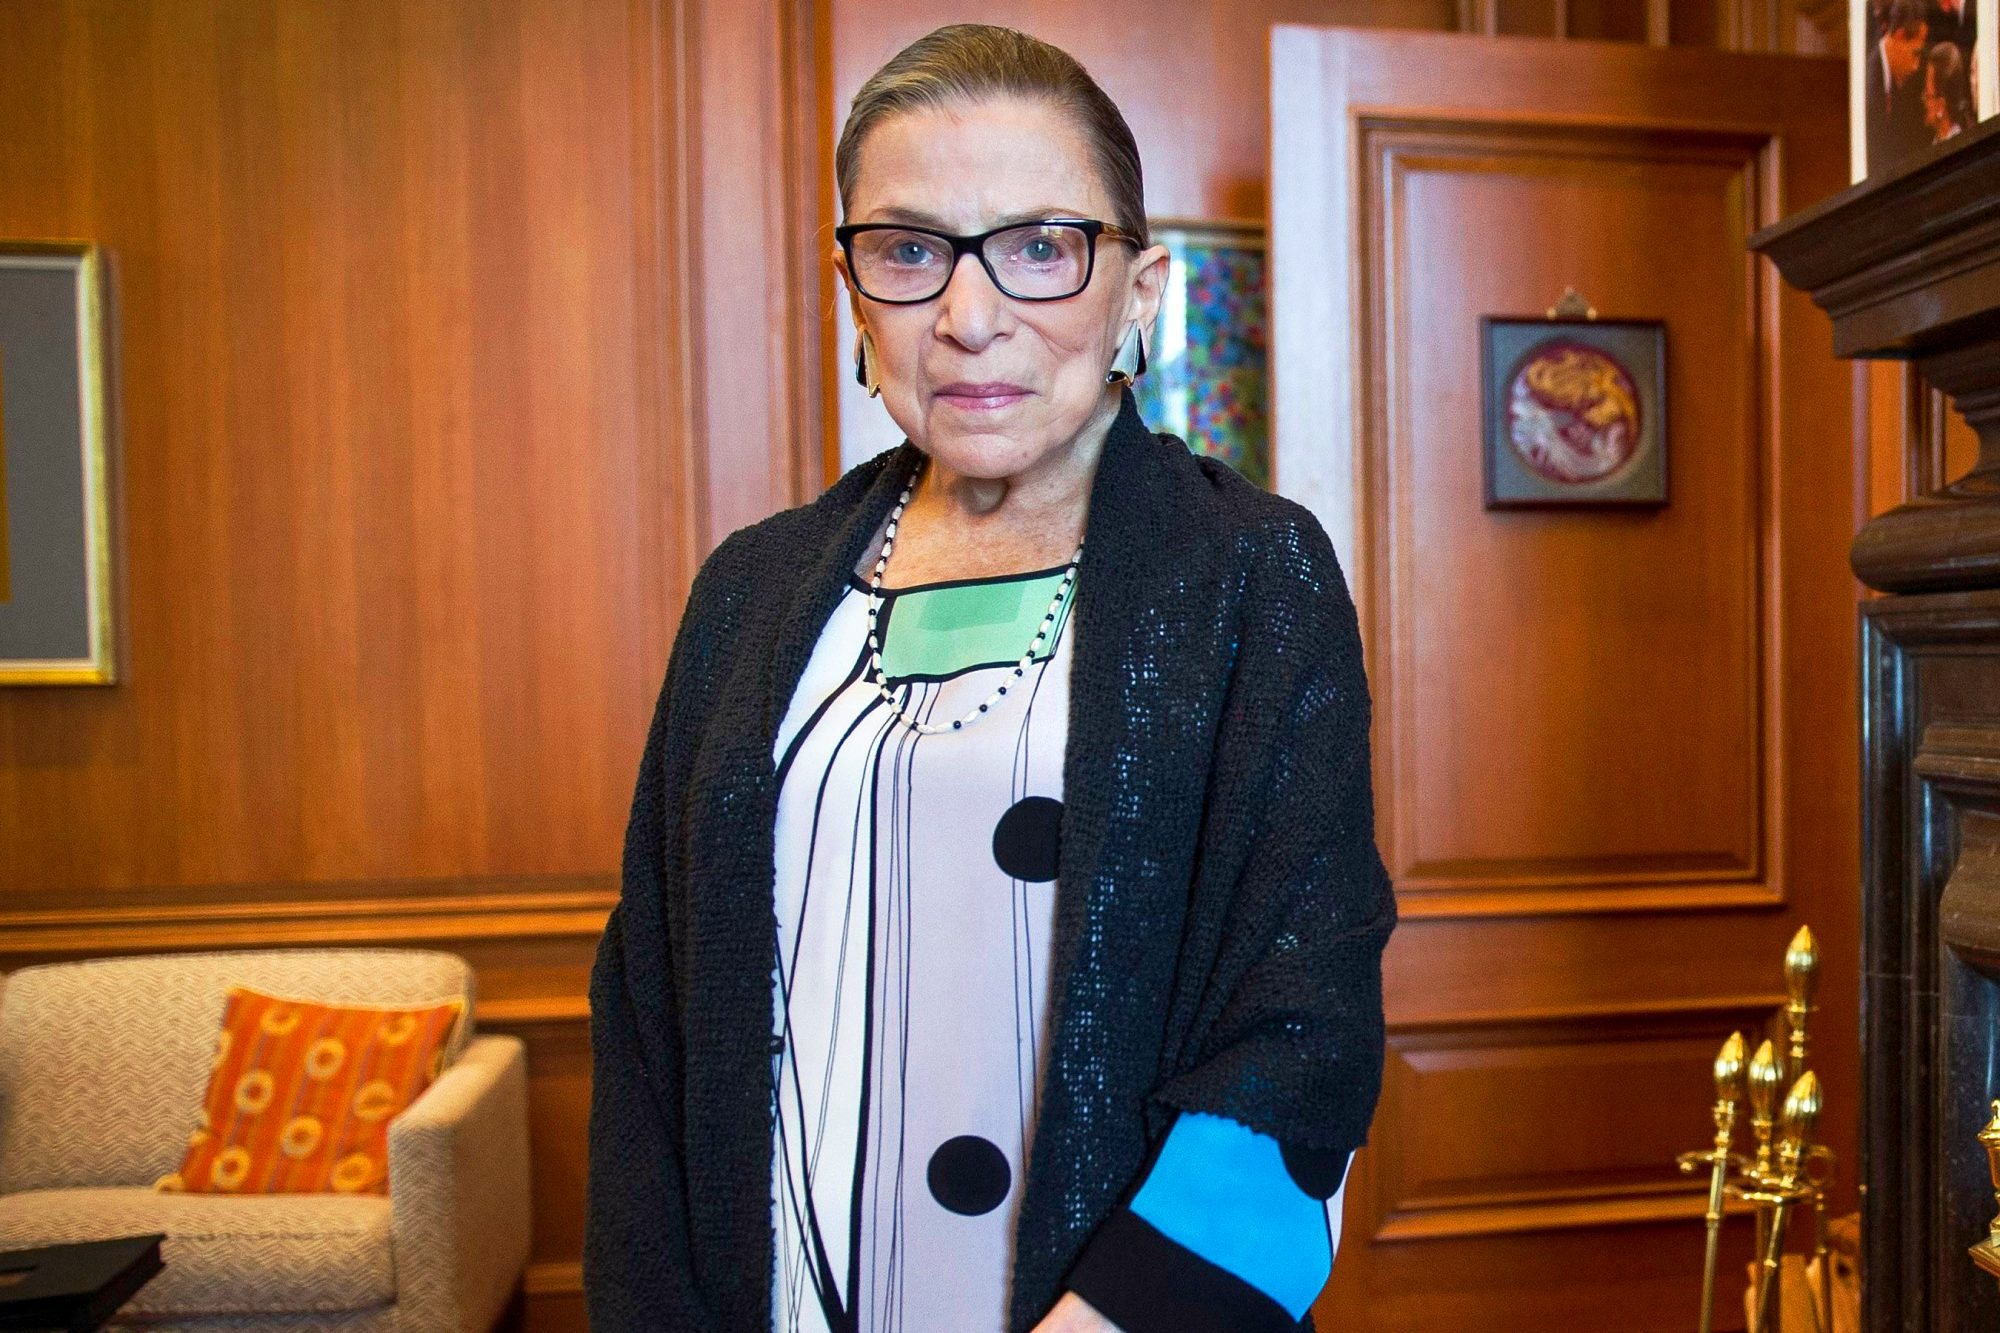 Supreme Court Ginsburg, Washington, USA - 31 Jul 2014